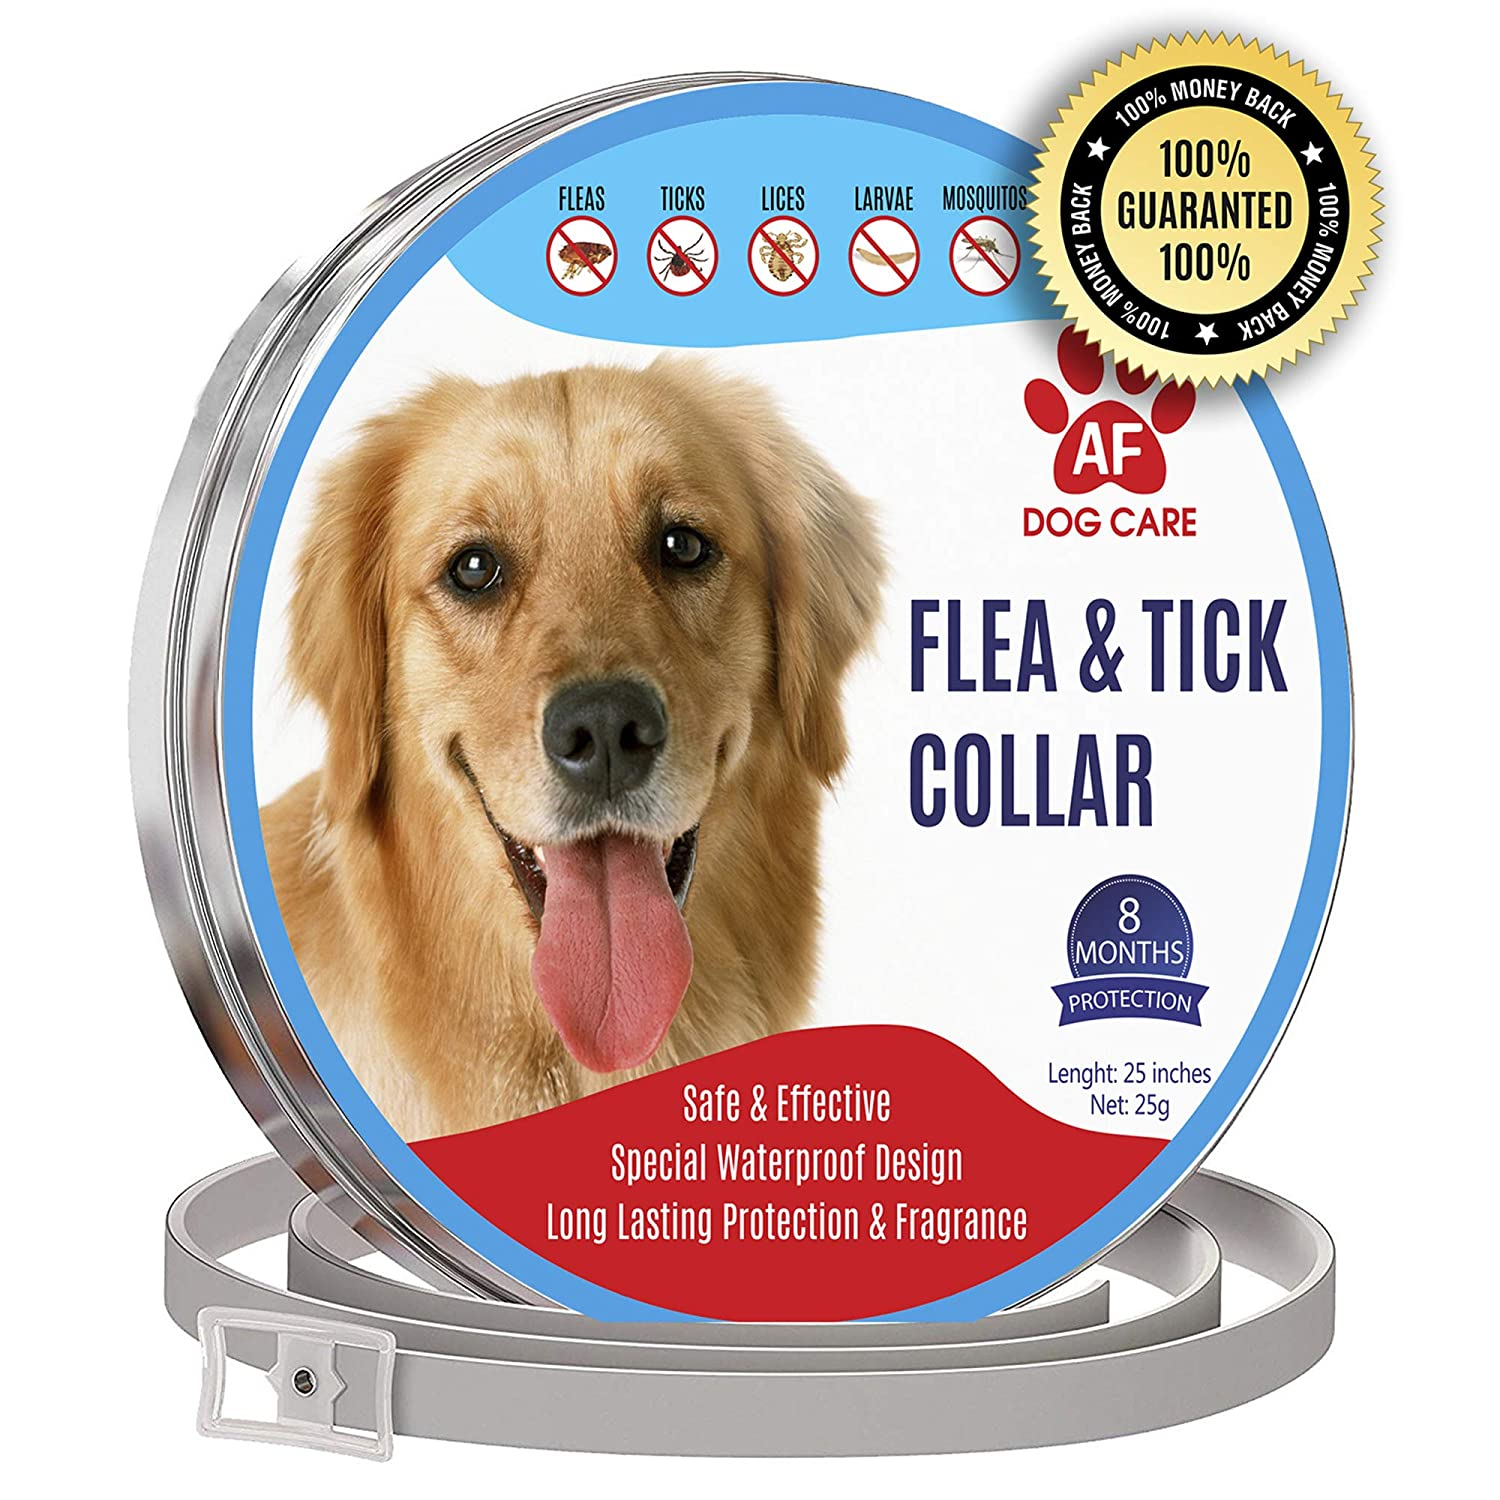 AF Dog Flea and Tick Control Collar – 8 Months Flea and Tick Control for Dogs – Natural, Herbal, Non-Toxic Dog Flea Treatment – Waterproof Protection and Adjustable Best Flea Collar for Dogs